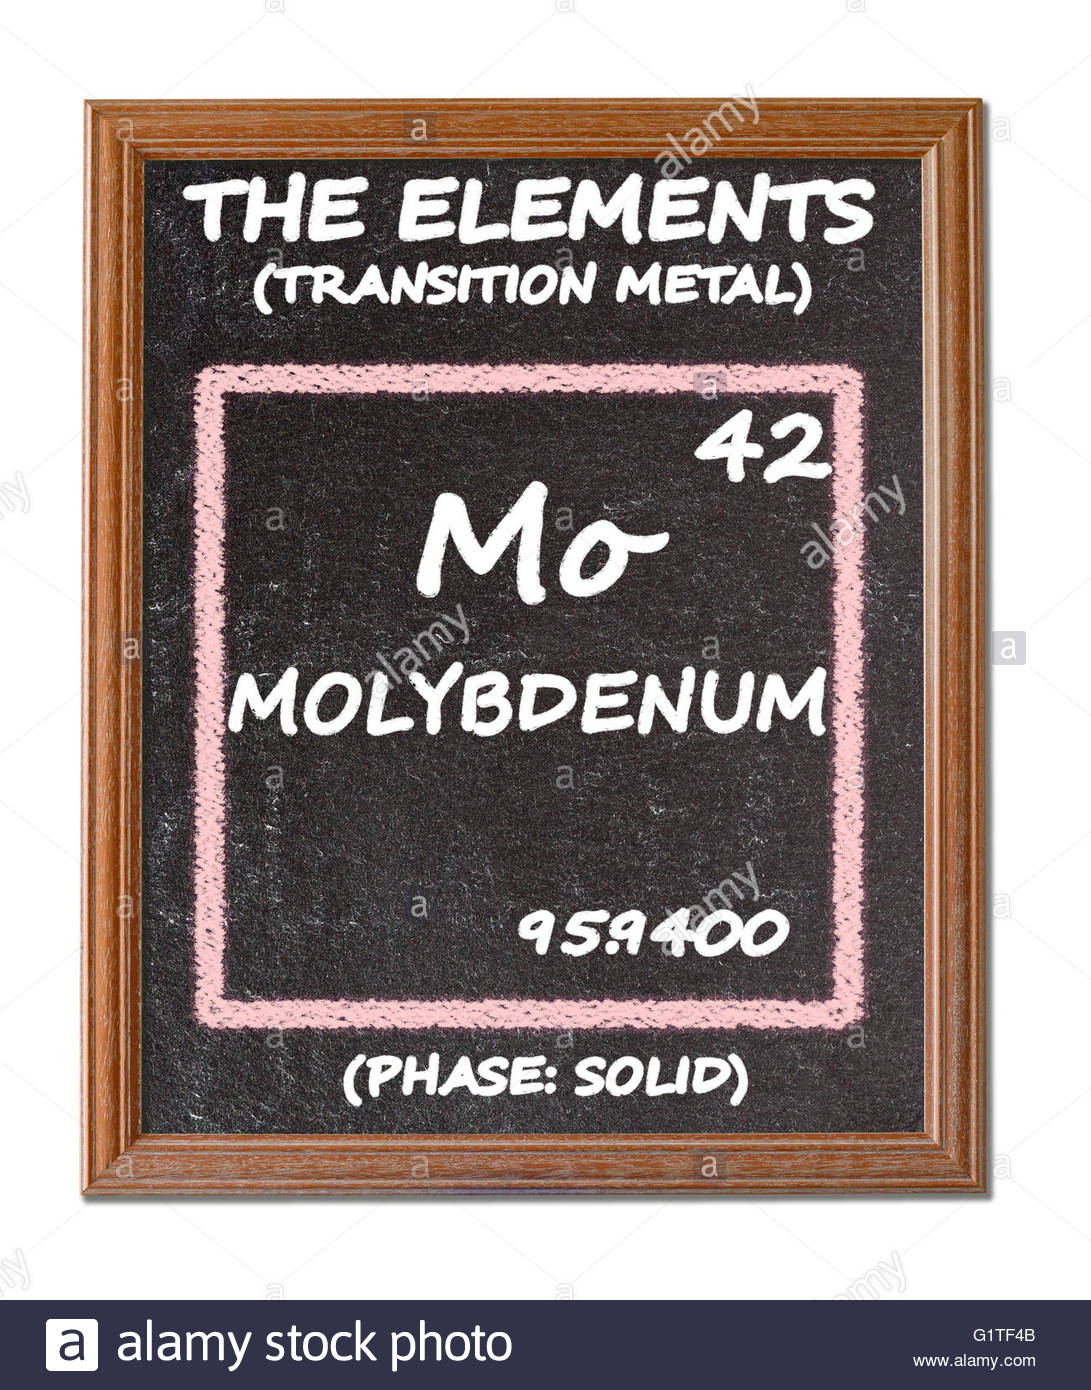 Molybdenum  - details from the periodic table - Stock Image